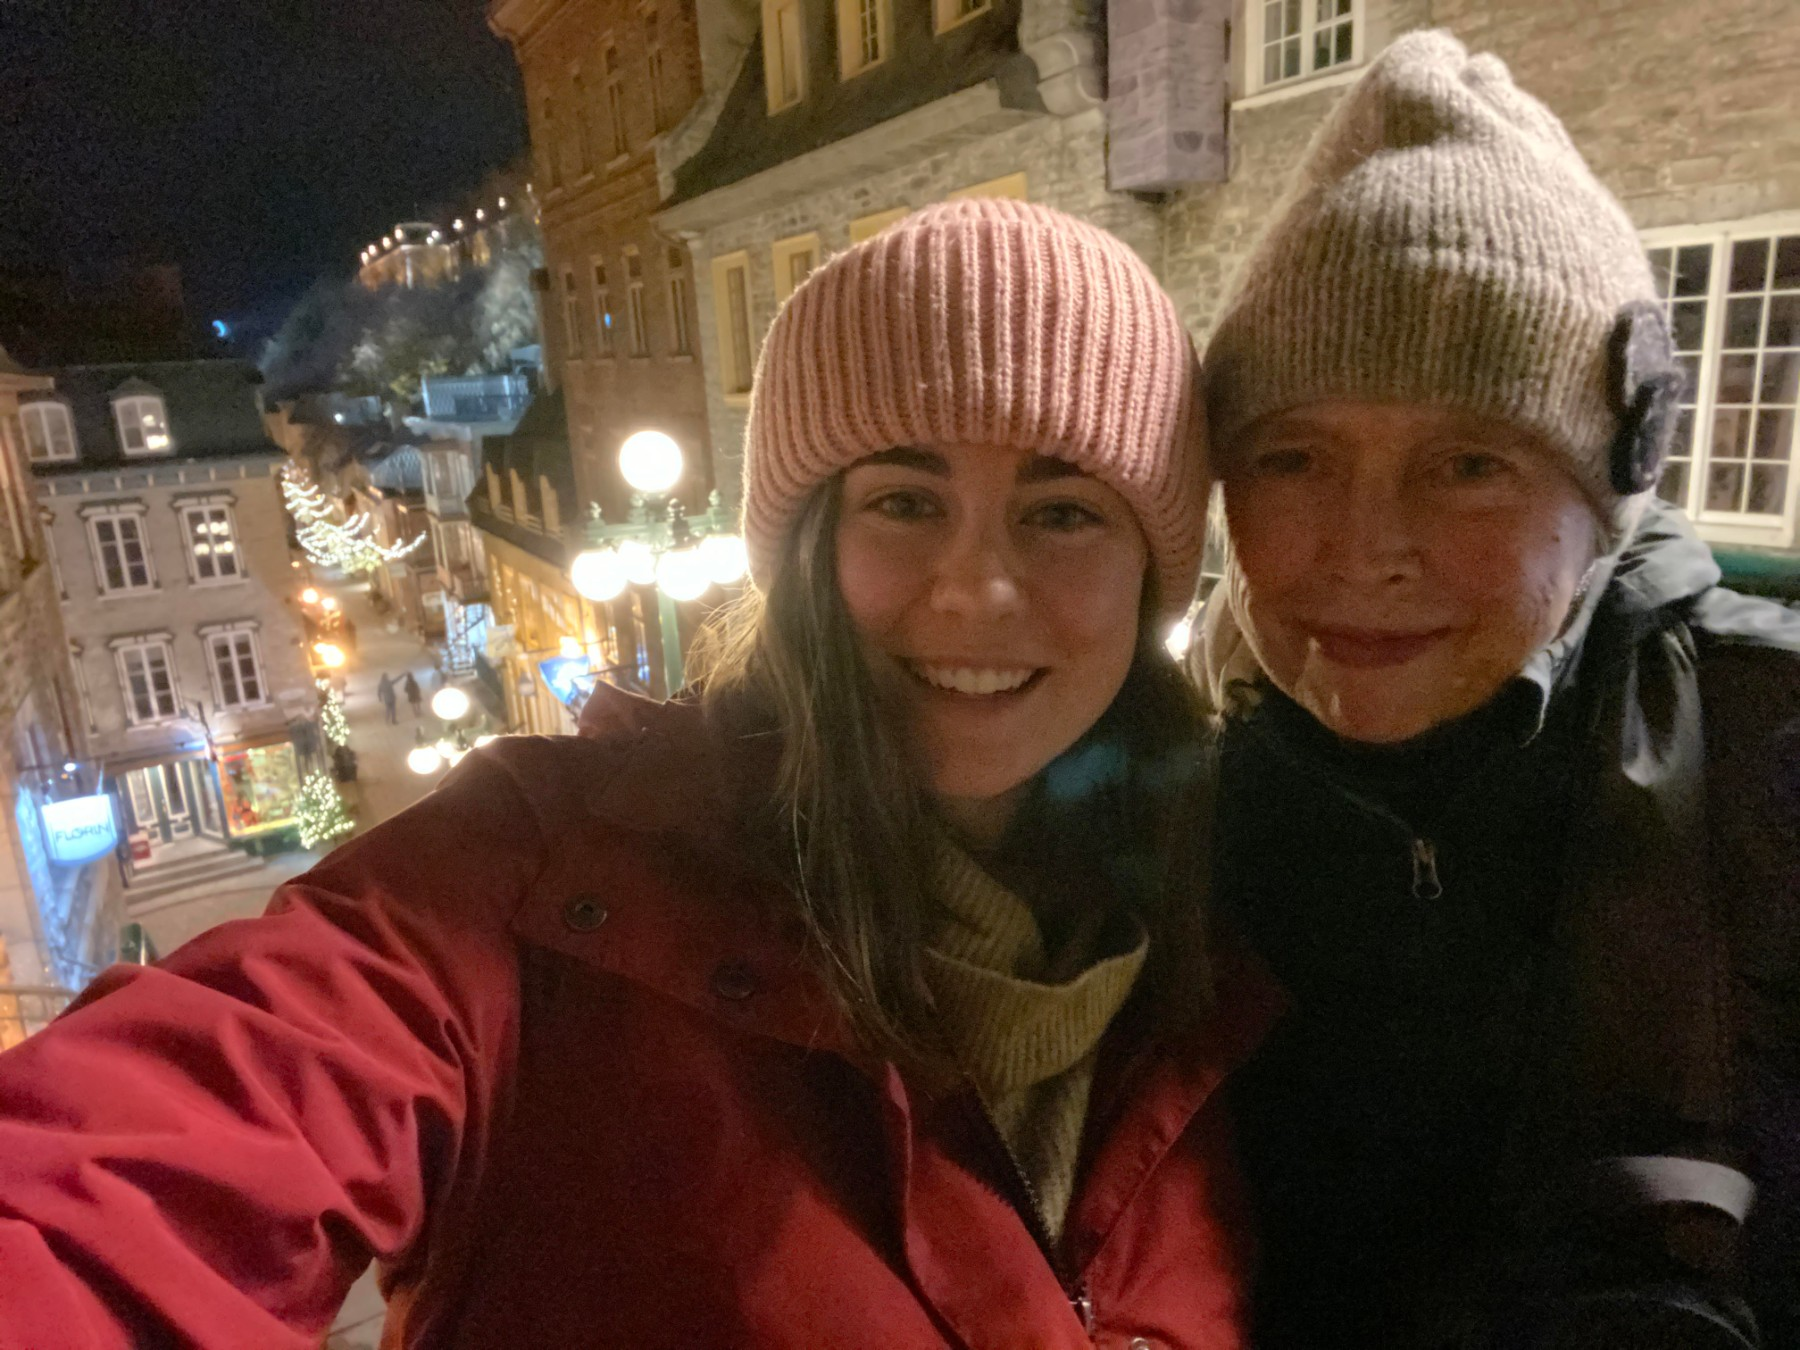 mother-daughter travel selfie by Sarah Bence